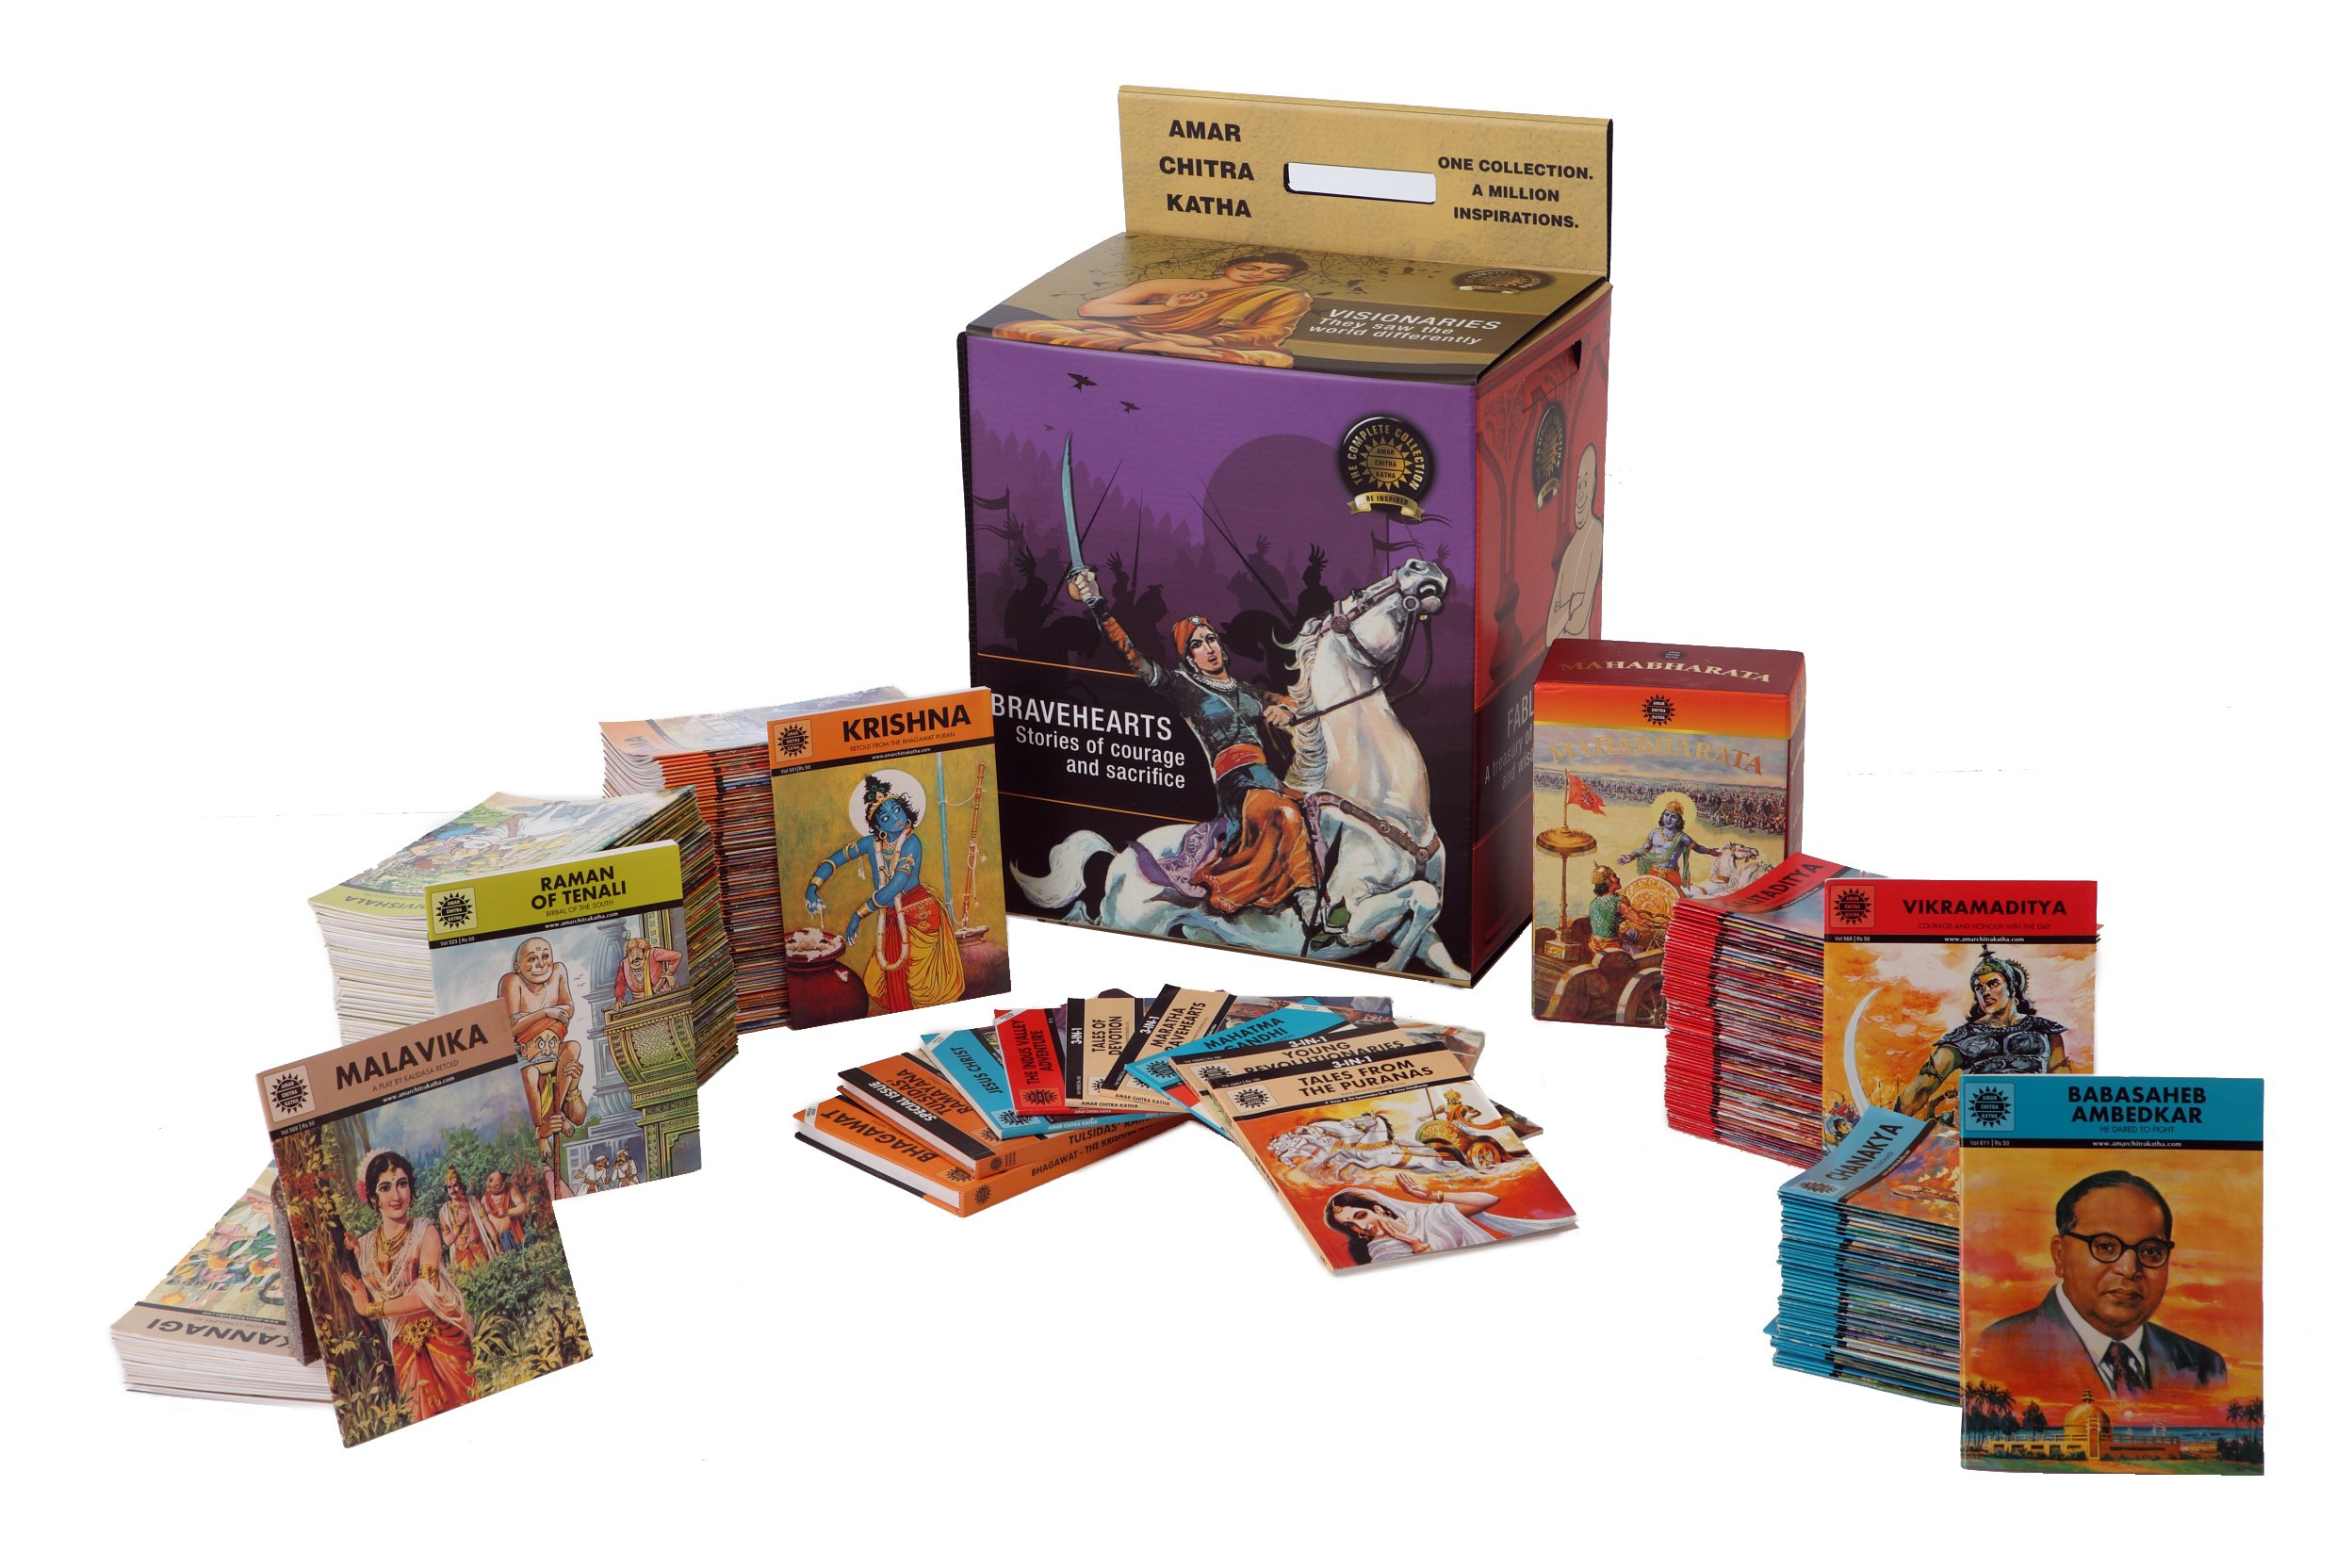 Amar Chitra Katha Complete Collection 300 Titles 10 Specials 9788184829396 Amazon Com Books